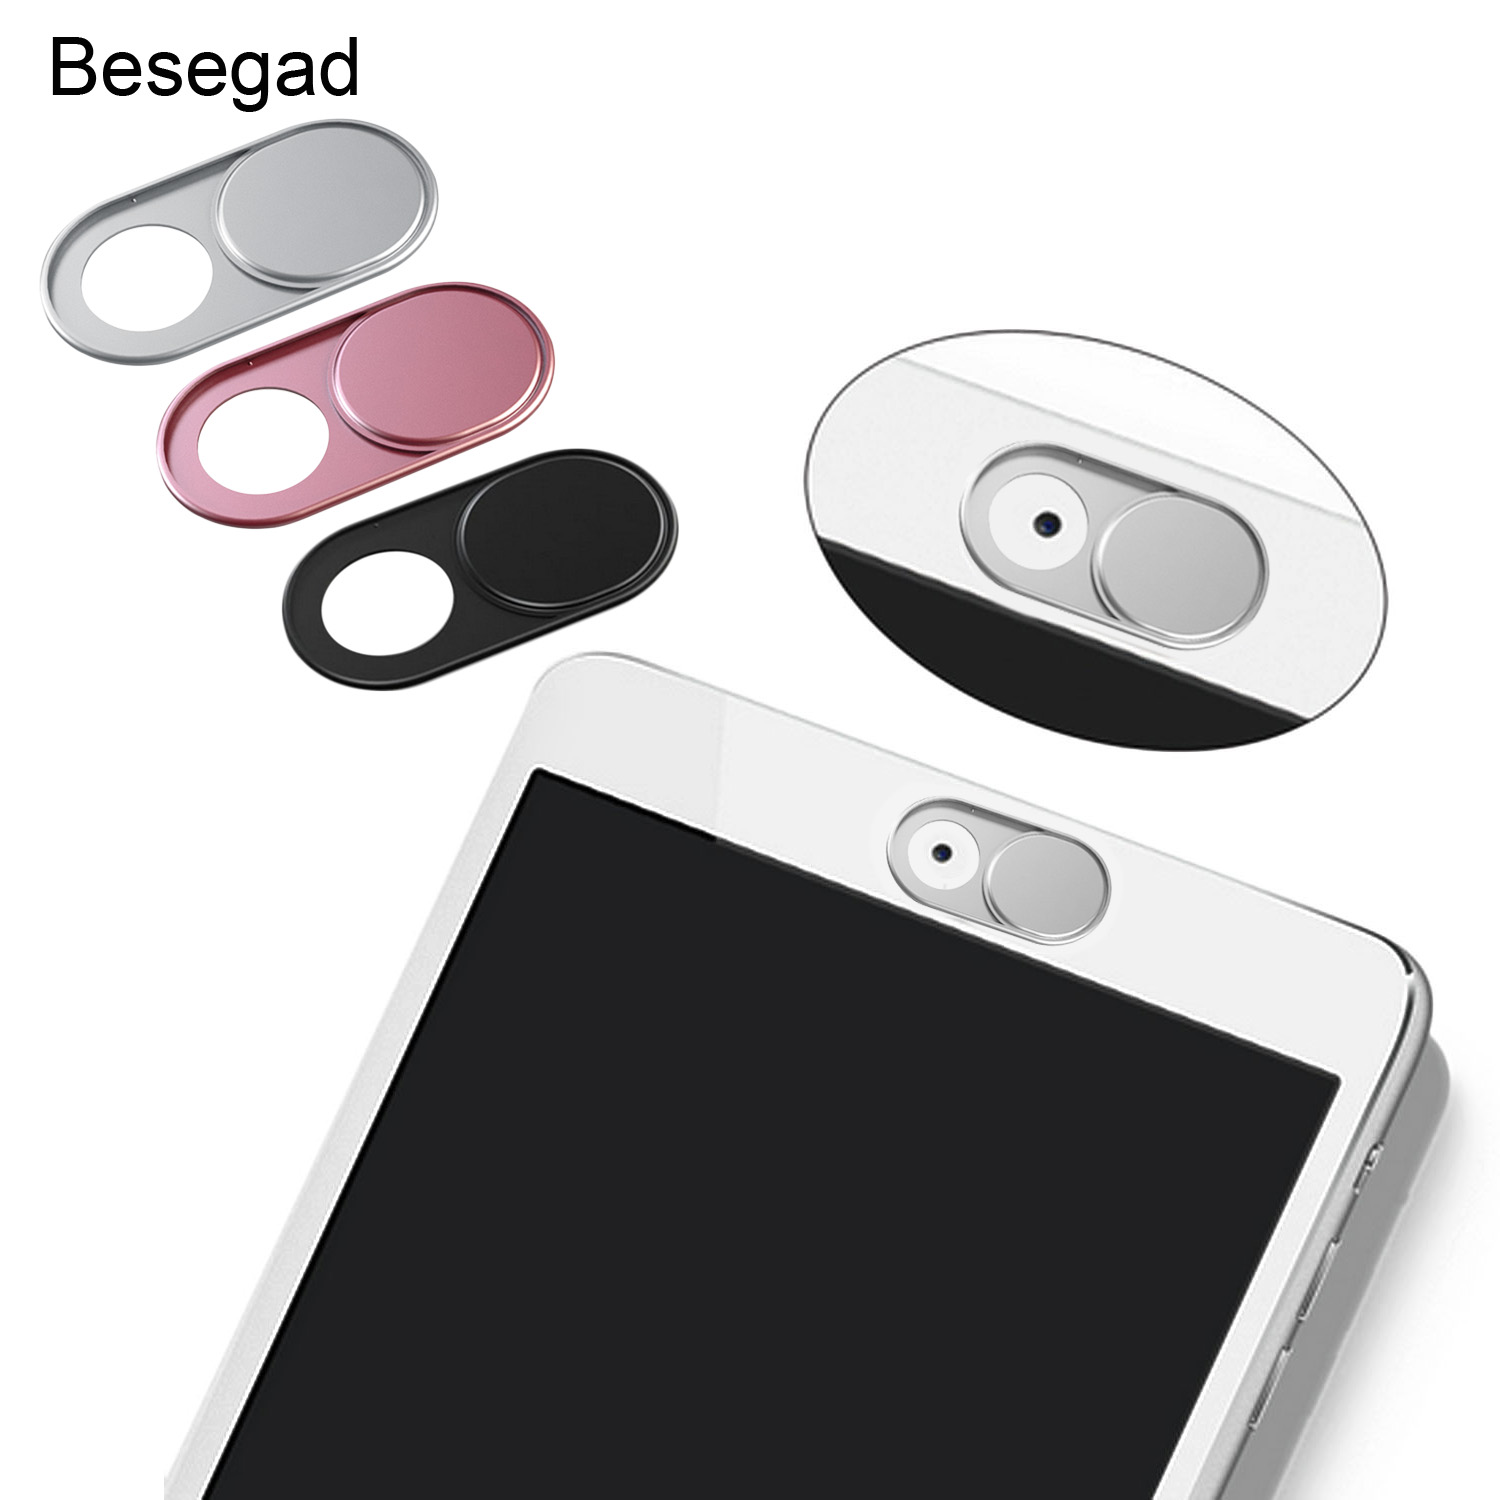 3 PCS Ultra-Thin Webcam Web Camera Cover Shutter w/ Strong Adhensive for Macbook Pro Mac Laptops Computer Smartphone